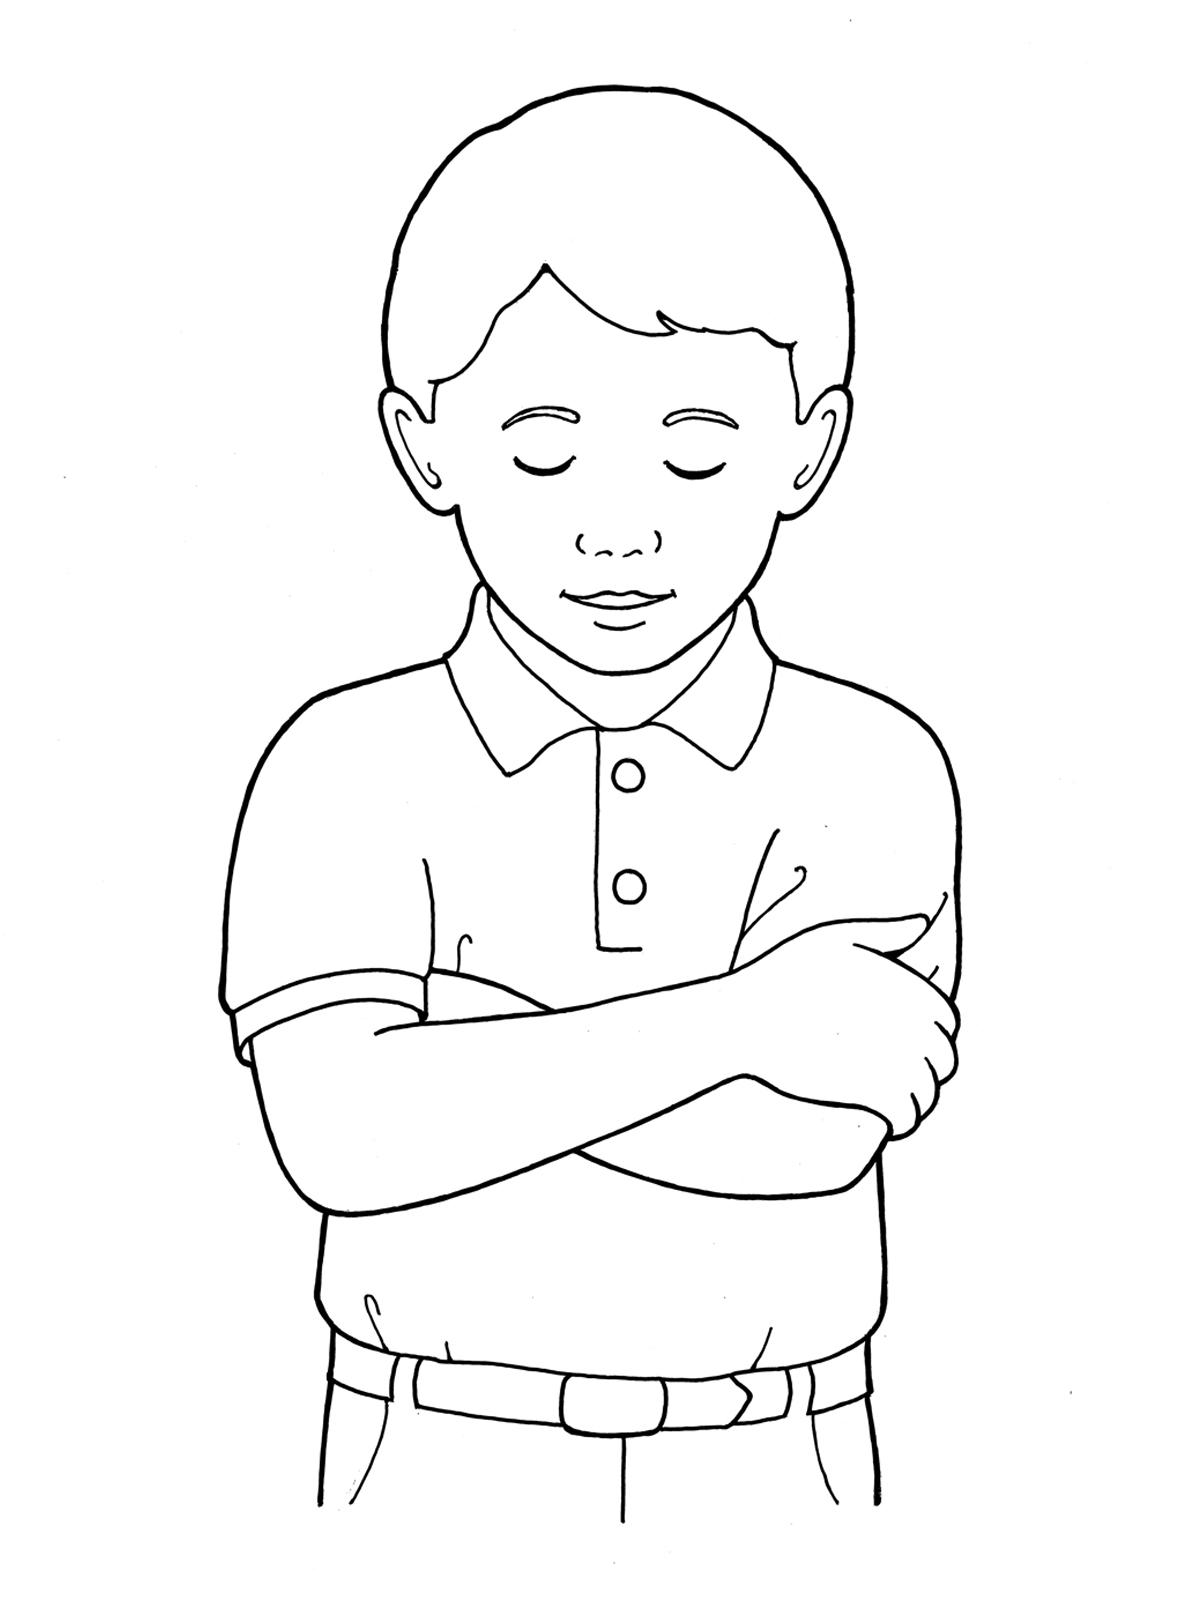 picture of little girl praying black and white clipart Clipground